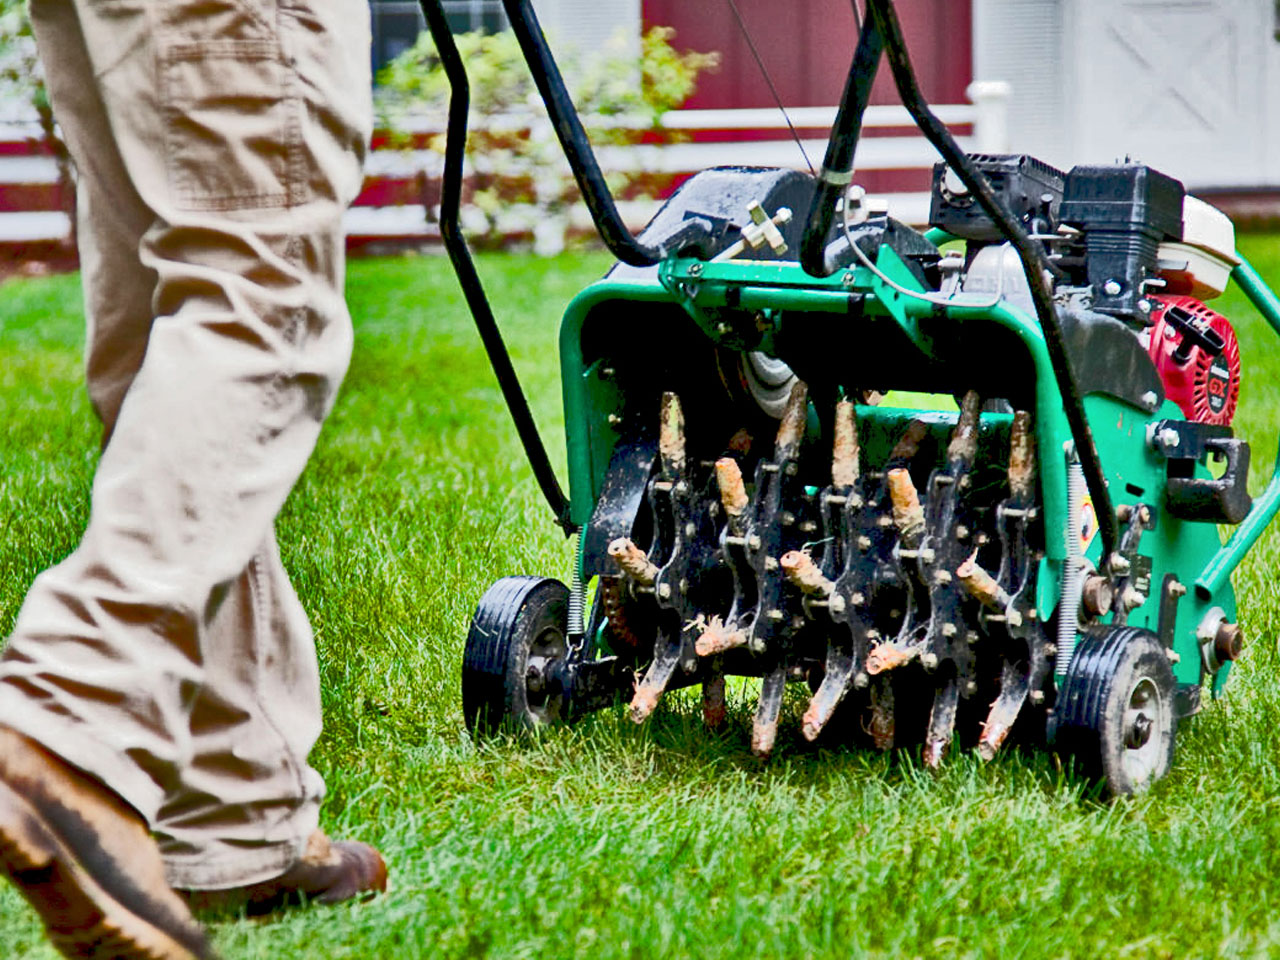 We recommend at least one lawn aeration every year. This is a highly overlooked service that significantly improves the overall quality of the lawn. Aeration helps break up the sediment that was compacted over the year or even years. It allows the lawn to absorb important minerals and water more efficiently. This service is offered year round.